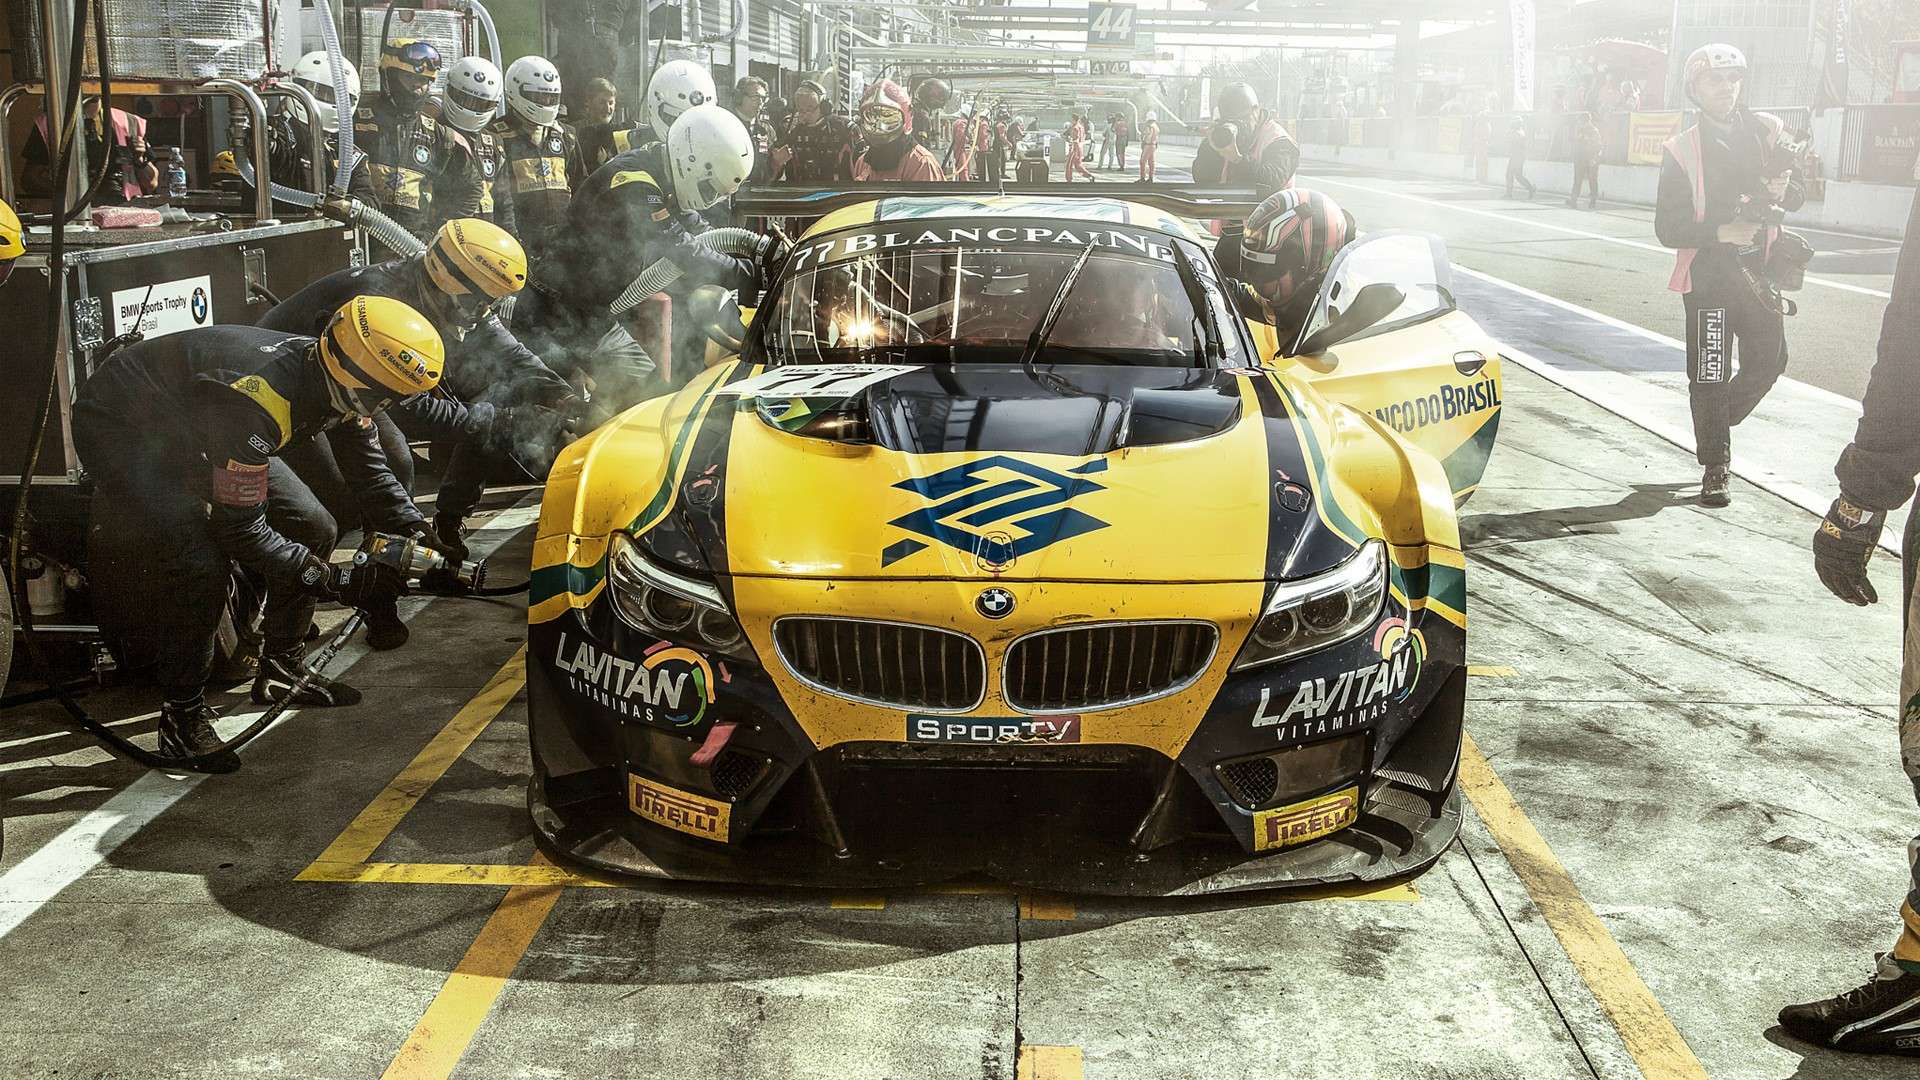 Car Wallpaper 8k Bmw Team Brasil Wallpapers Hd Wallpapers Id 14680